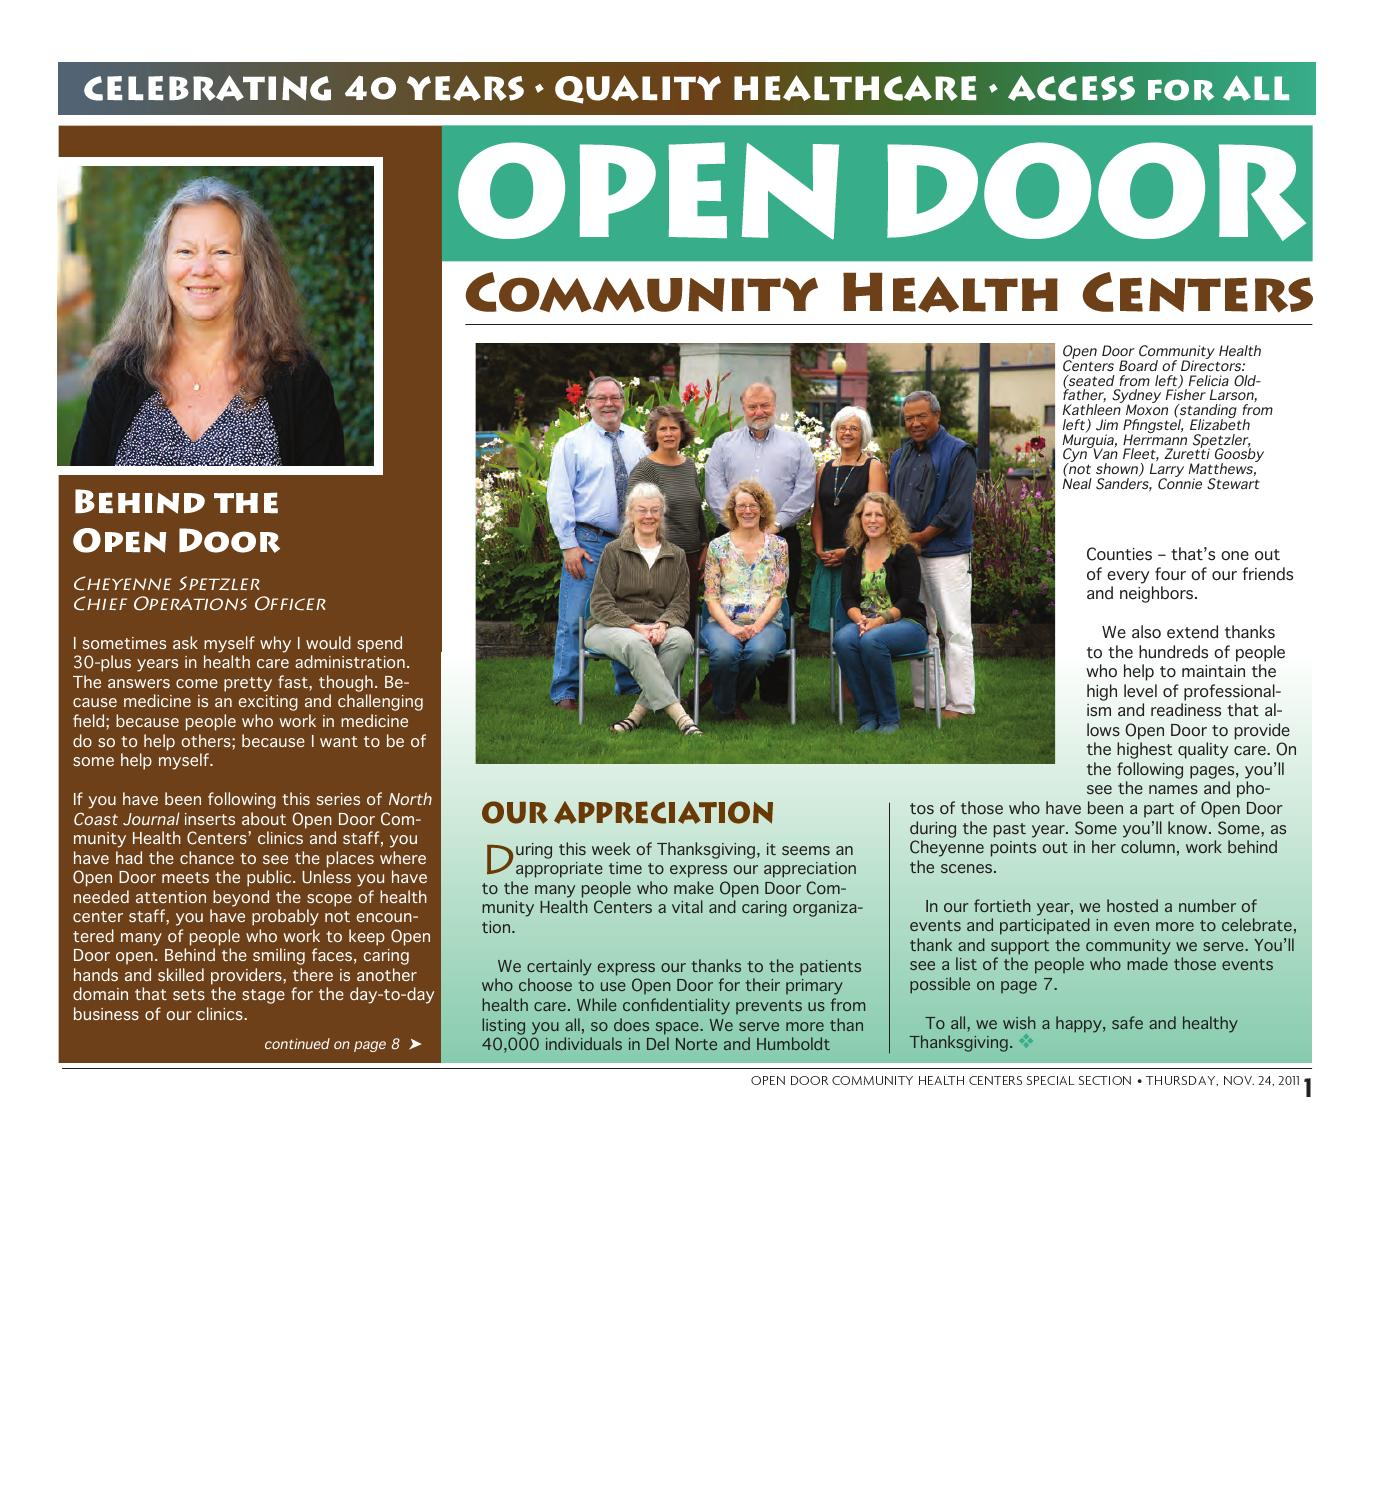 Attractive Open Door Community Health Centers By North Coast Journal   Issuu